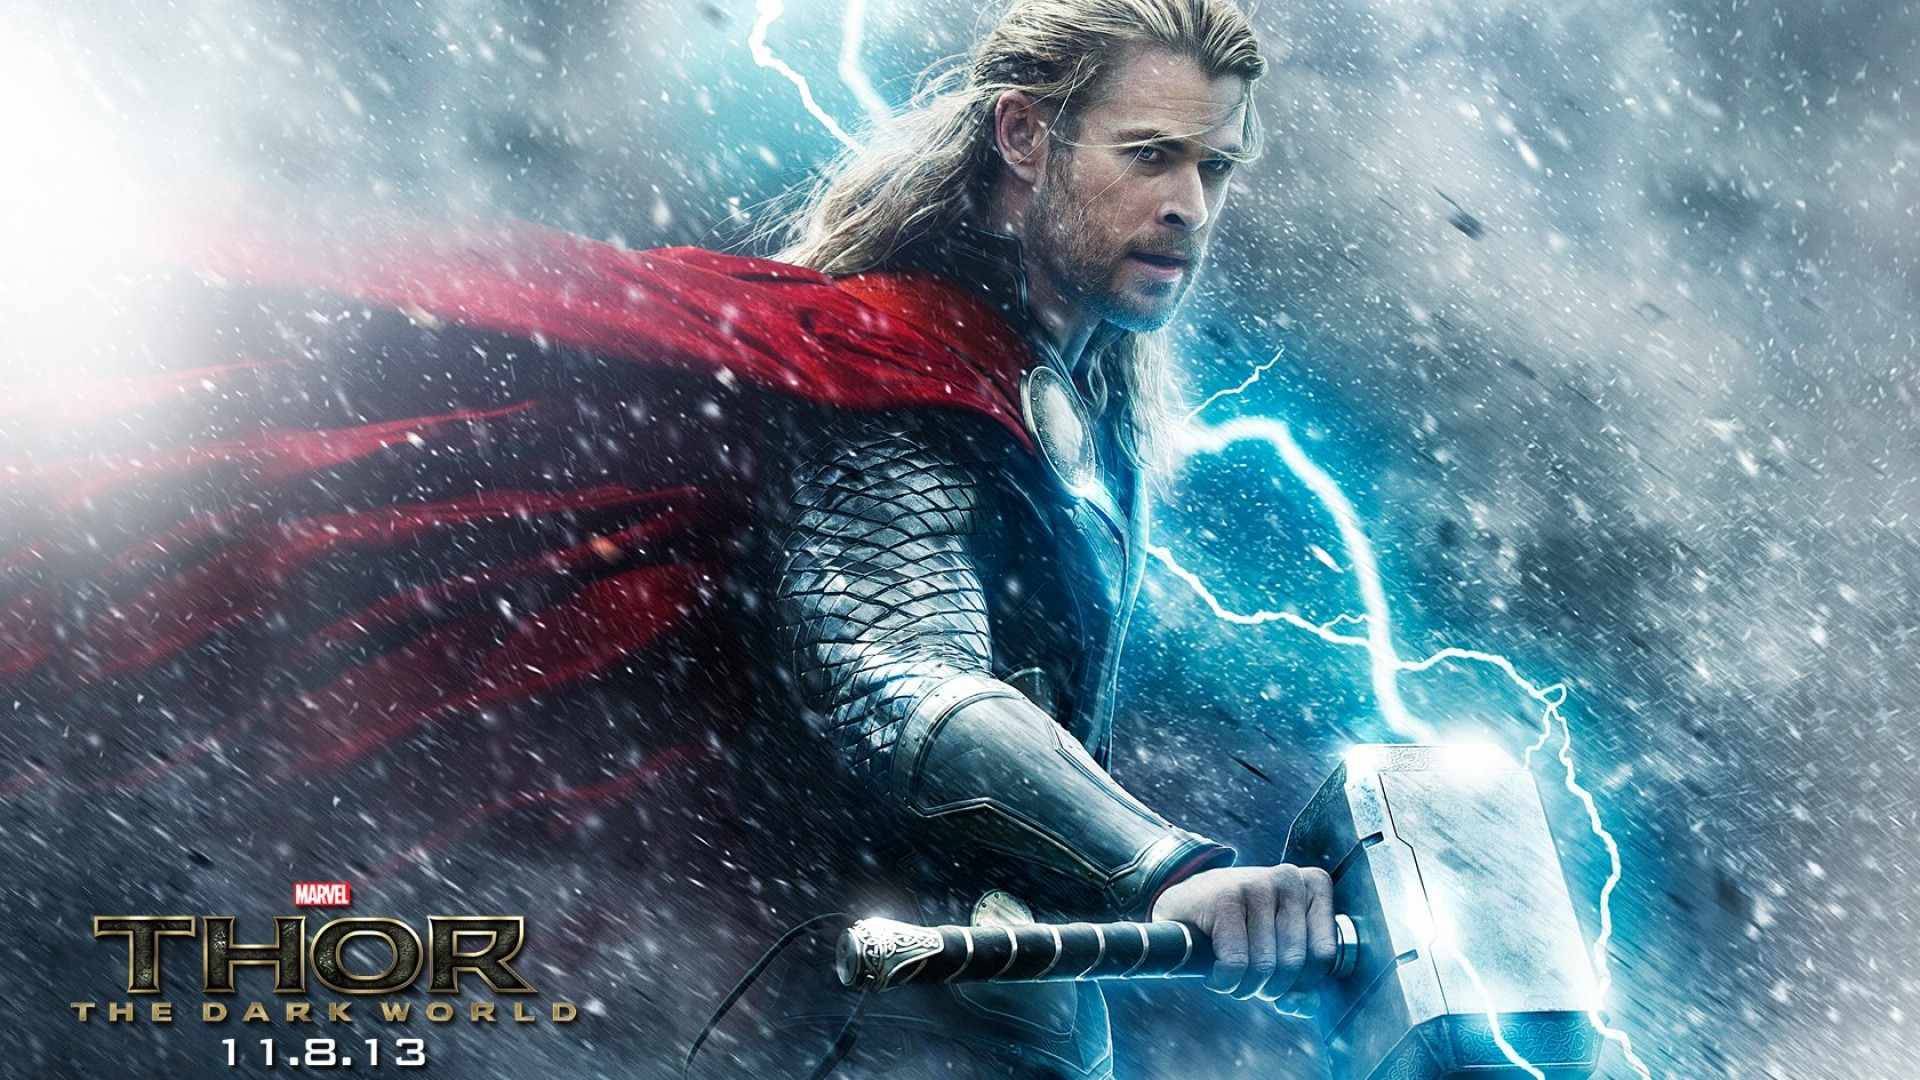 Free Download Thor The Dark World Hd Wallpaper Background Images